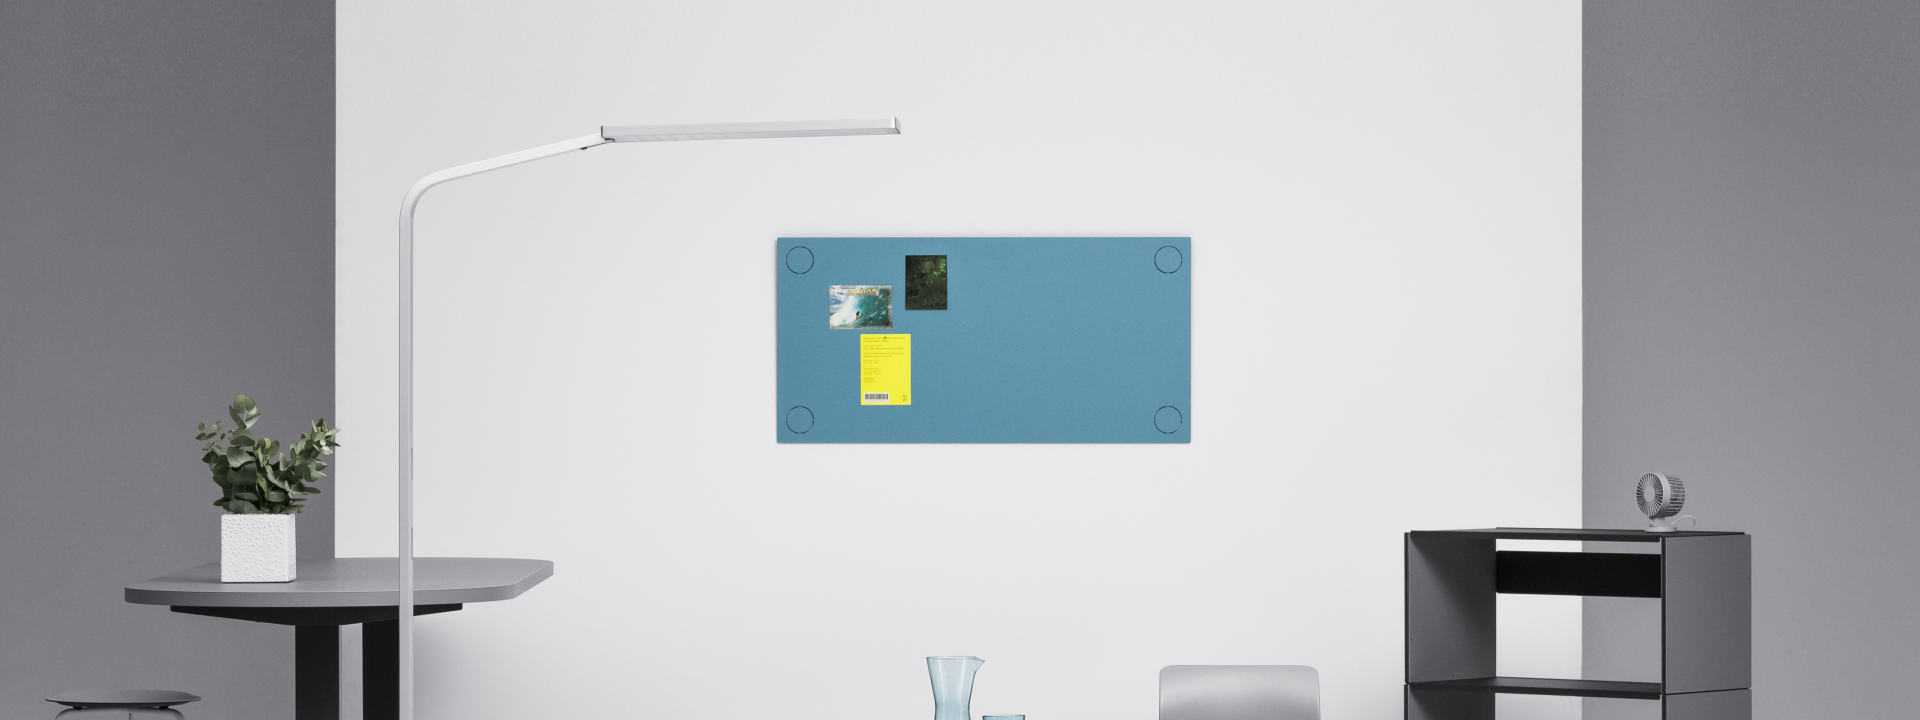 office pinboard. Magnetic Pinboard, Office, Magnet Wall, Whiteboard Office Pinboard A